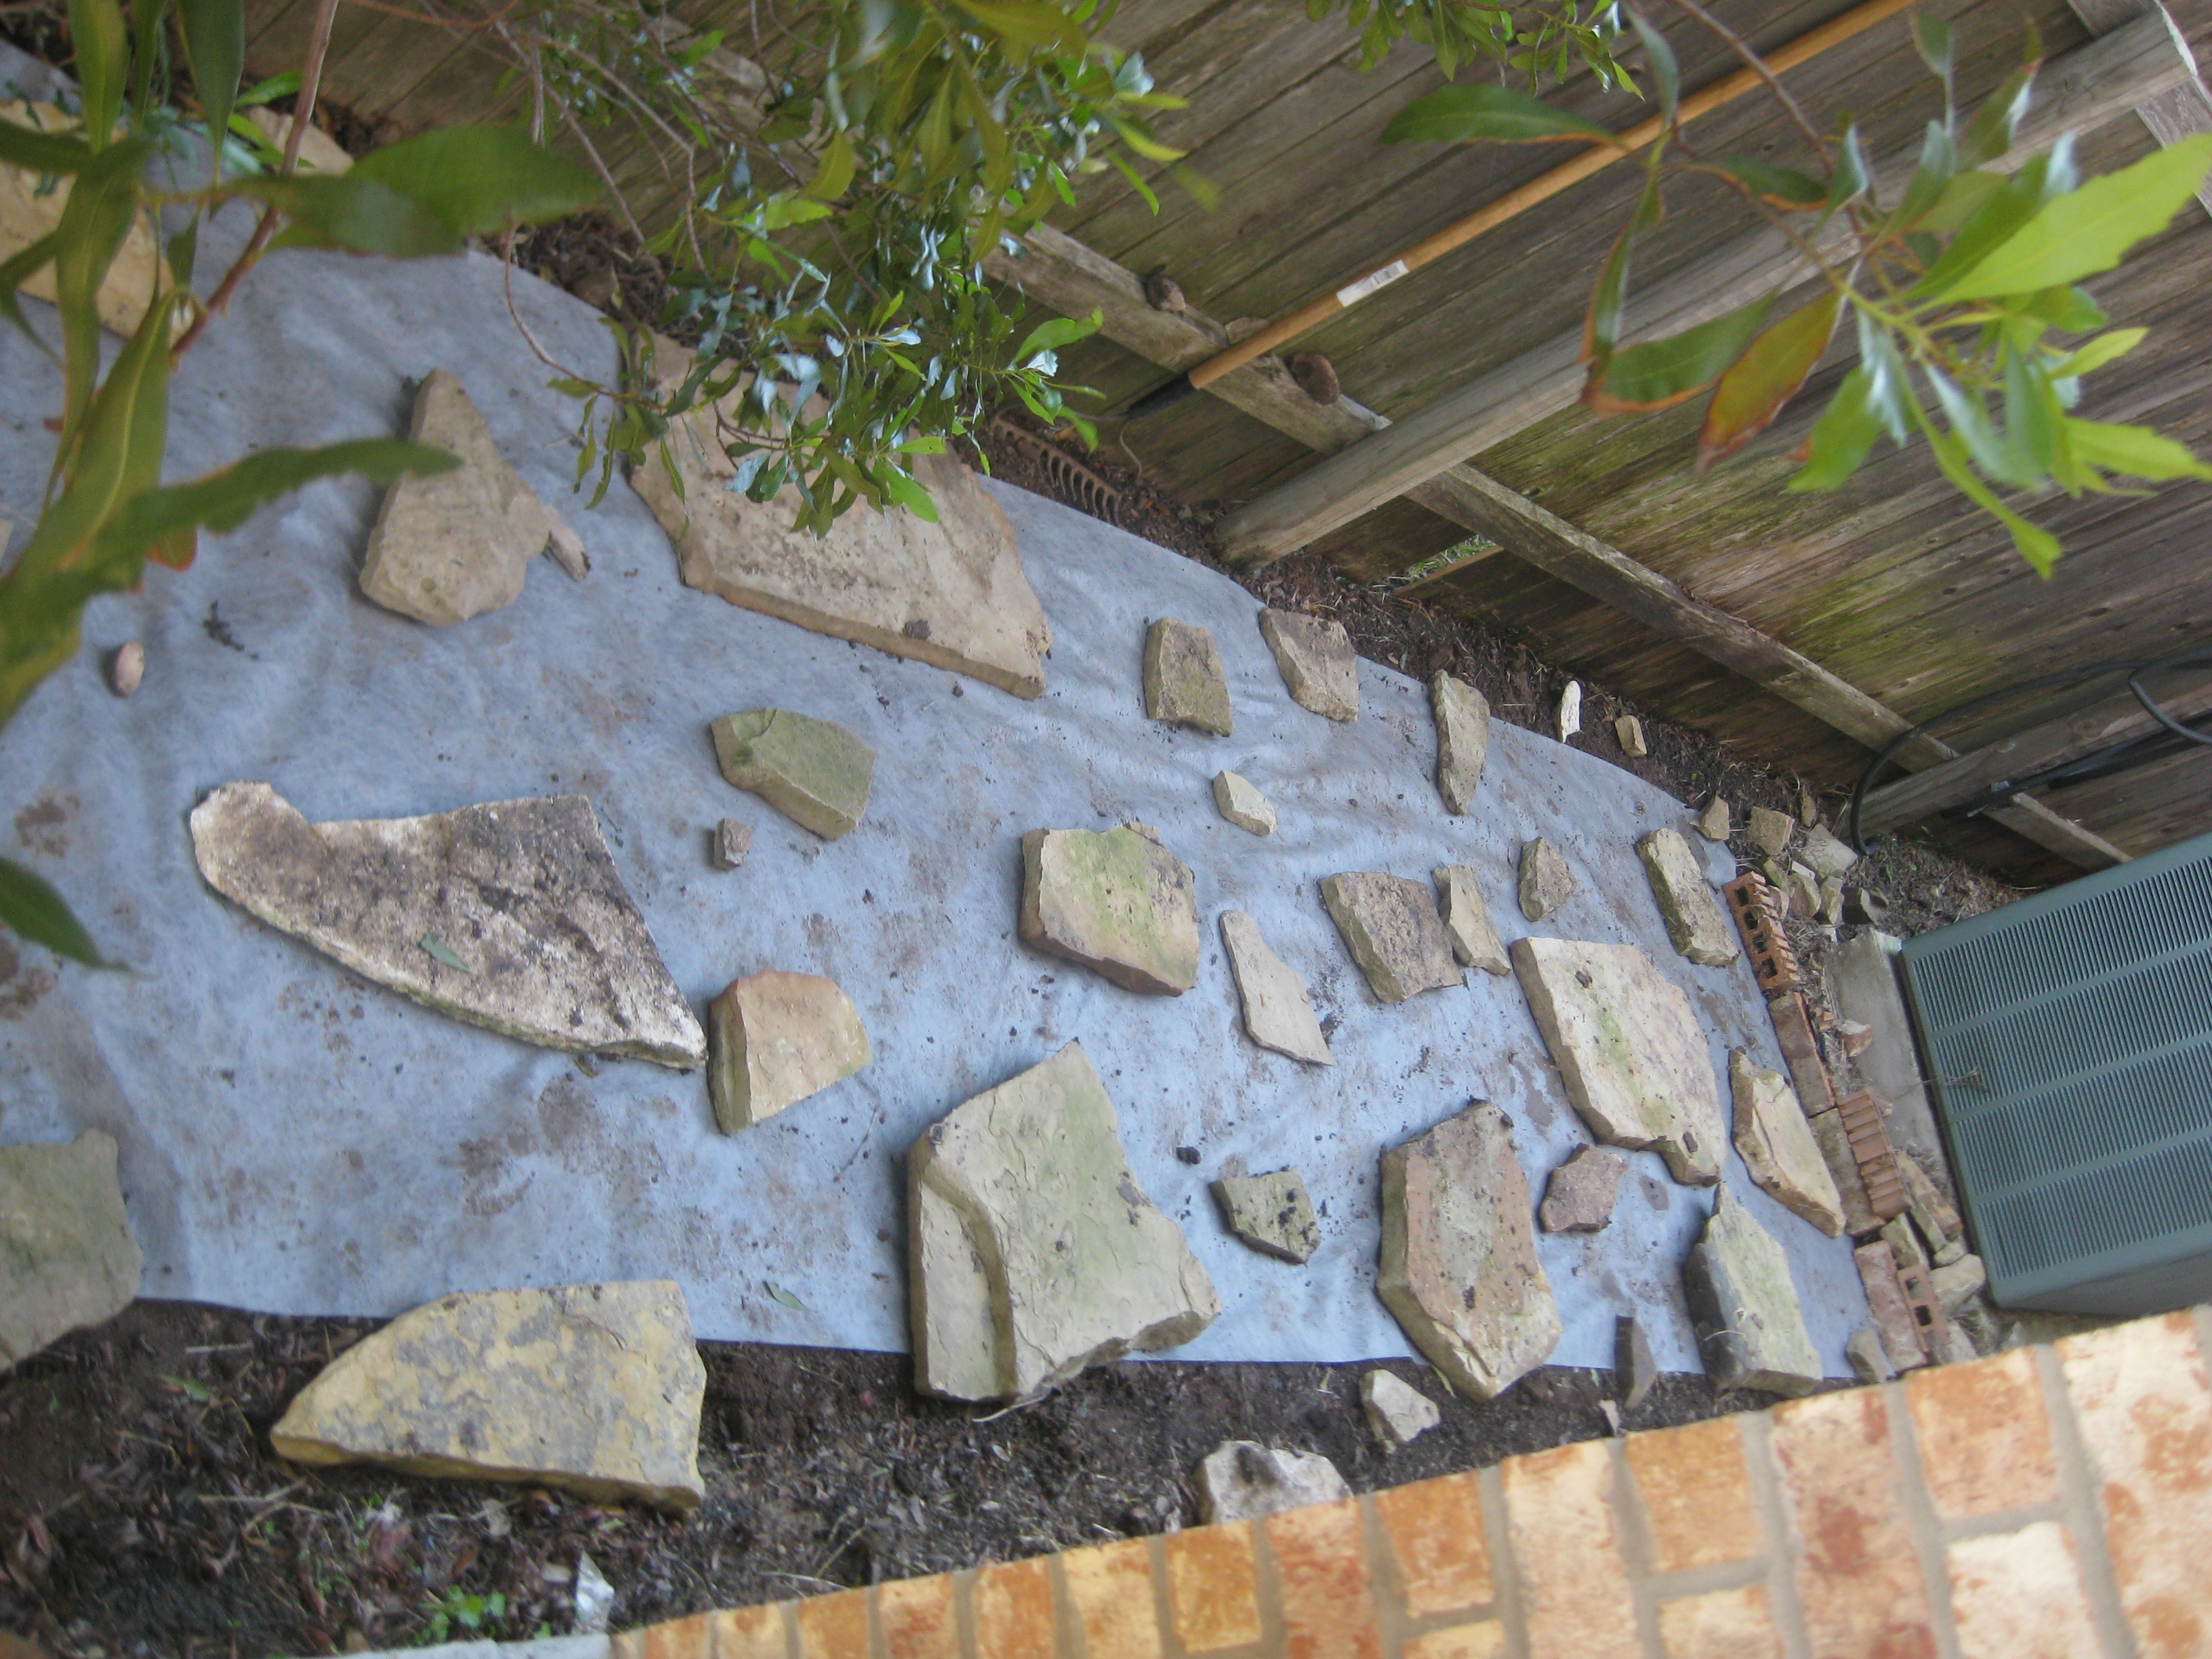 DIY Dry Laid Flagstone And Mulch Pathway – While Everyone Else Is